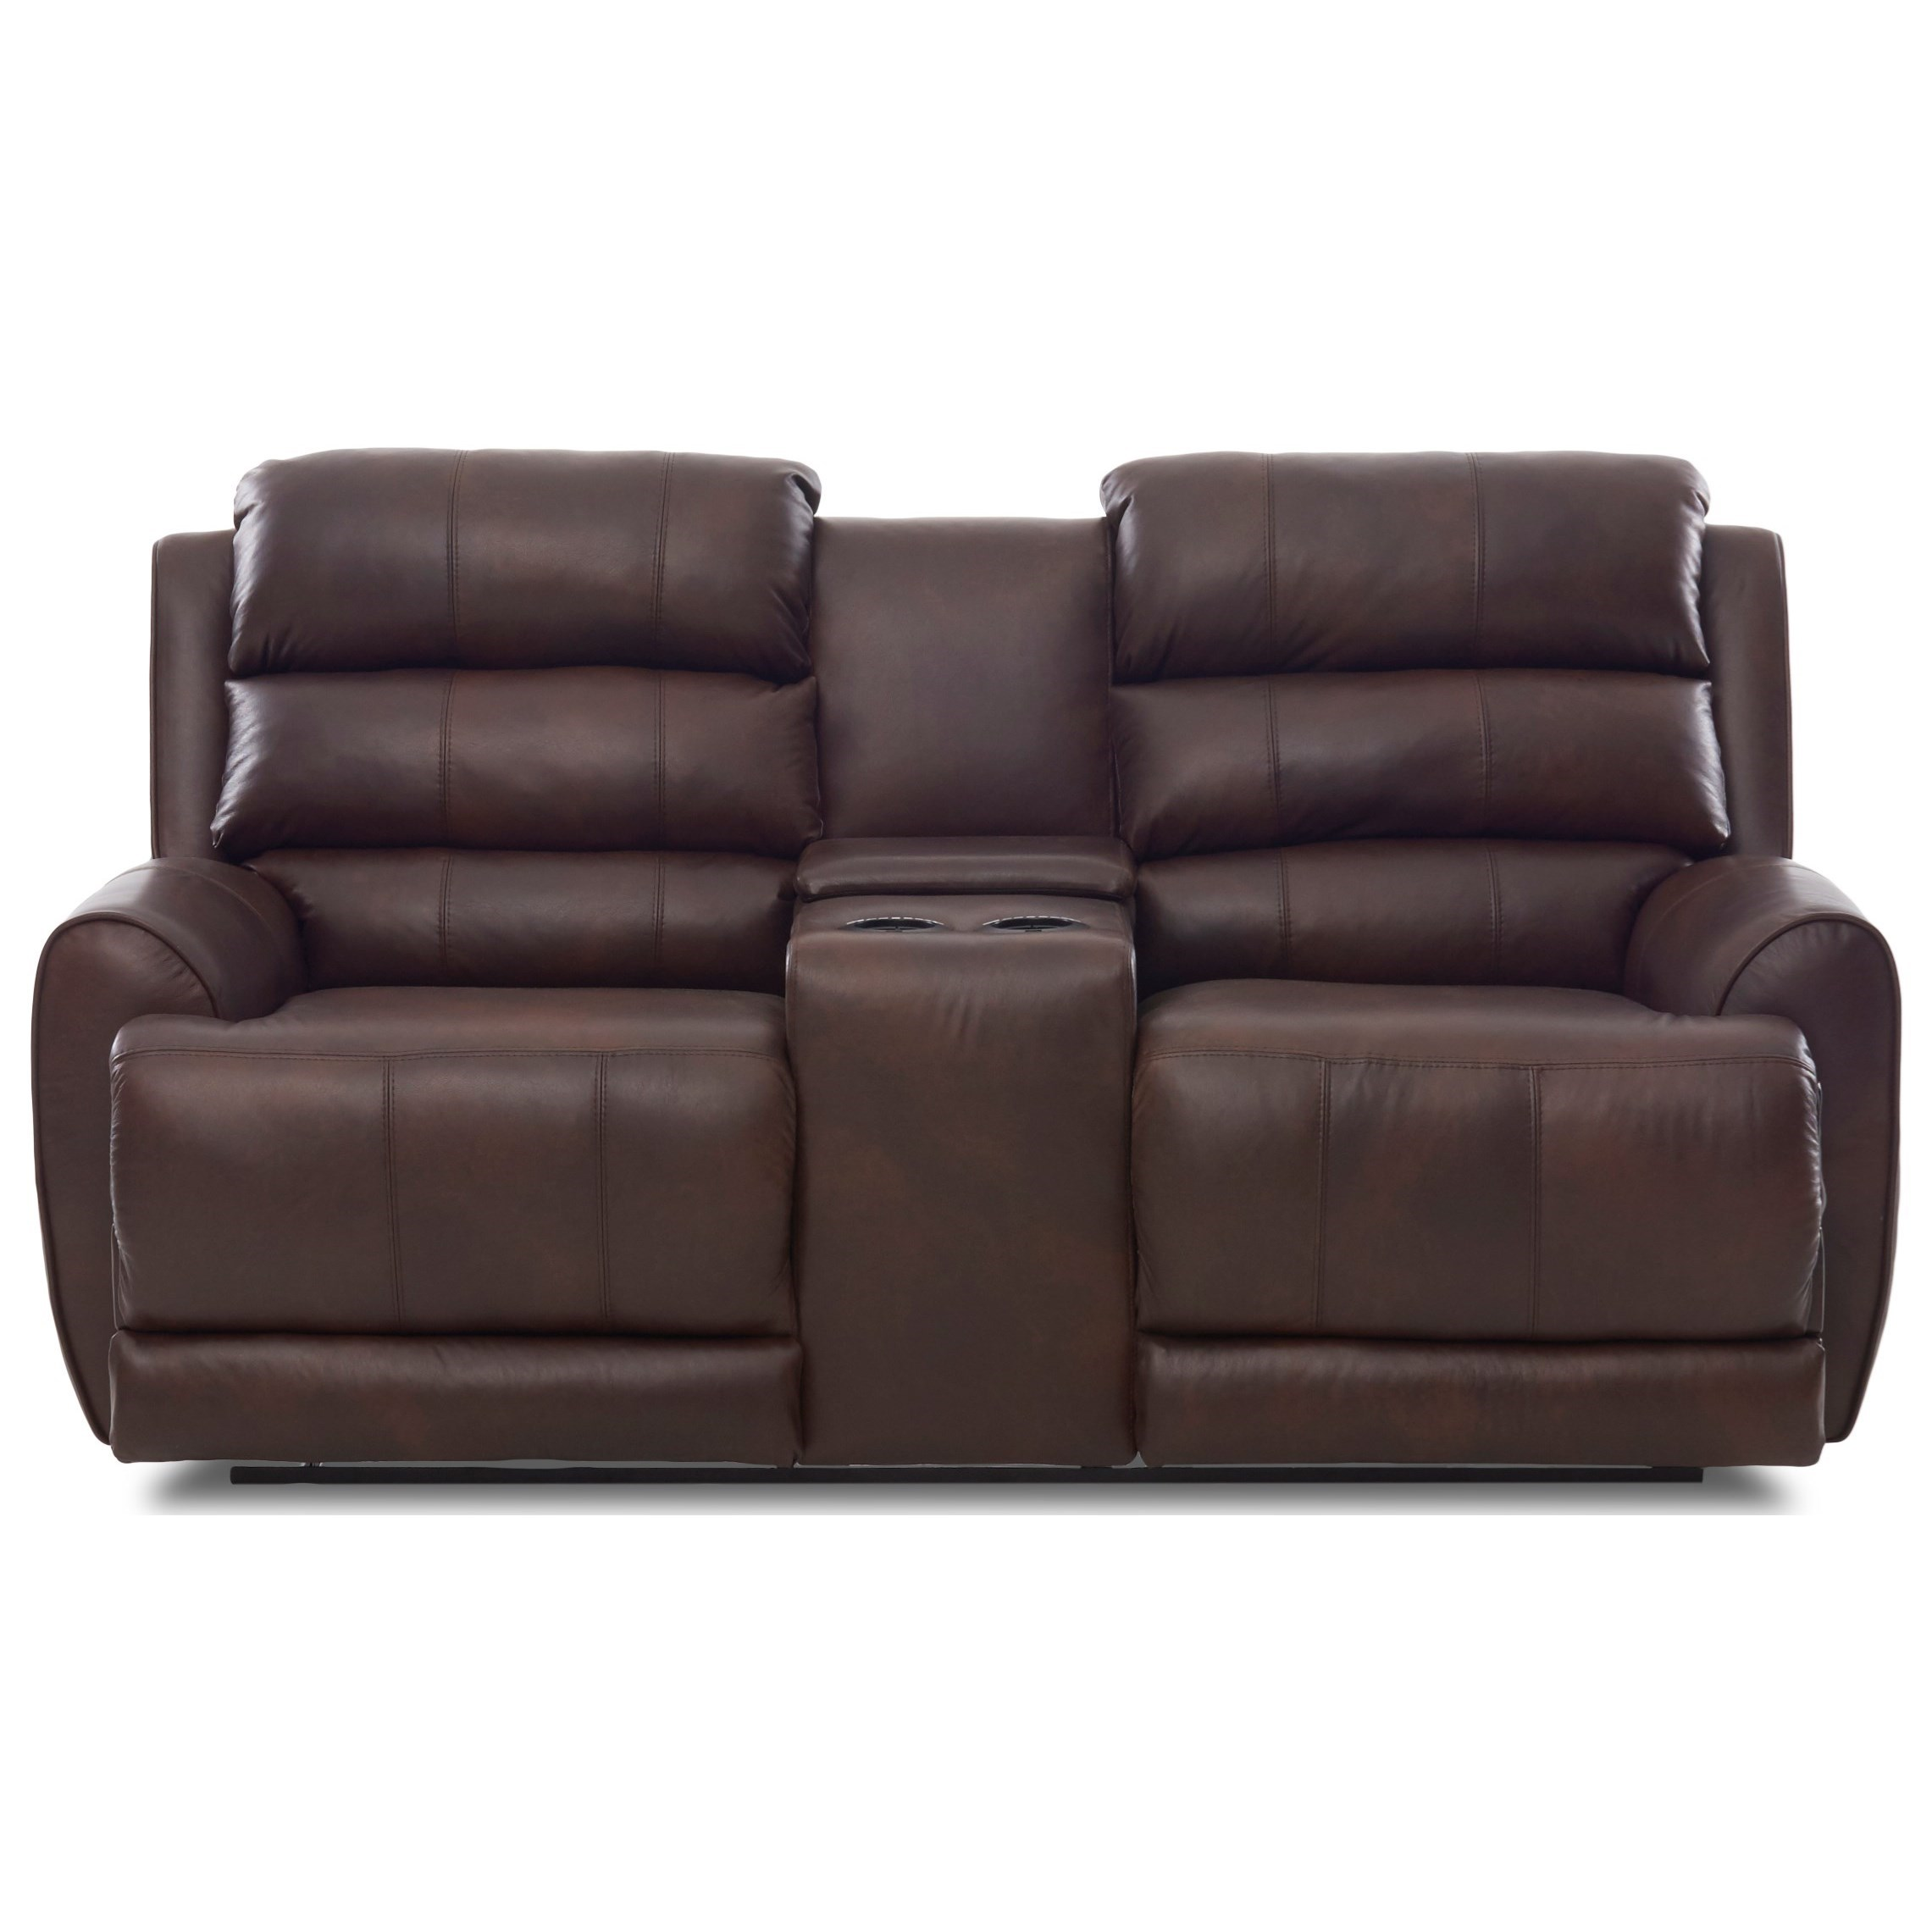 Contemporary Power Reclining Console Loveseat with Power Headrest/Lumbar, USB Ports, Bluetooth Functionality